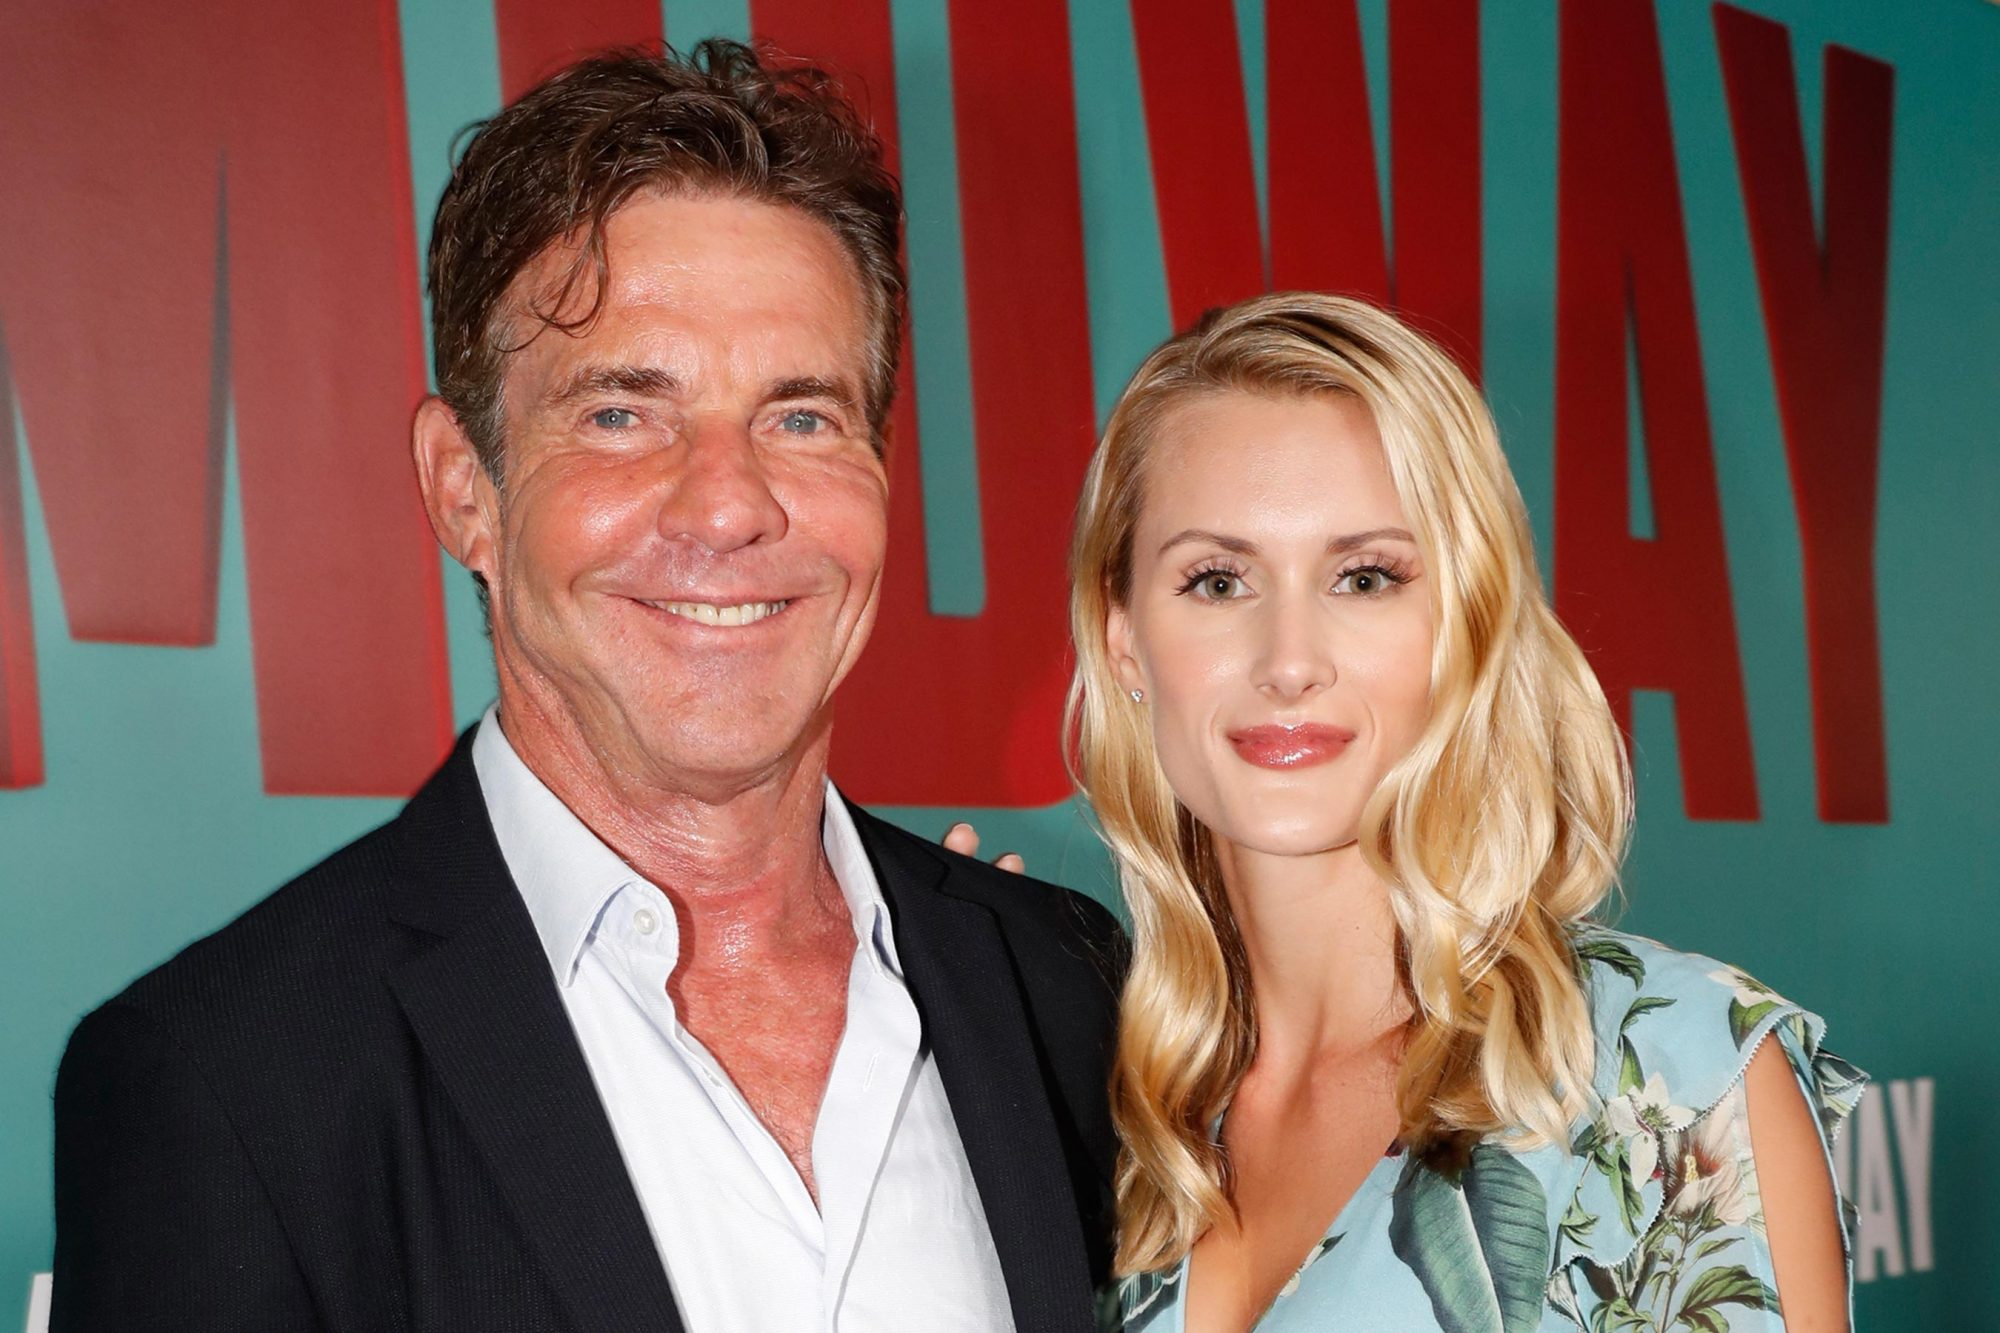 Dennis Quaid and Laura Savoie